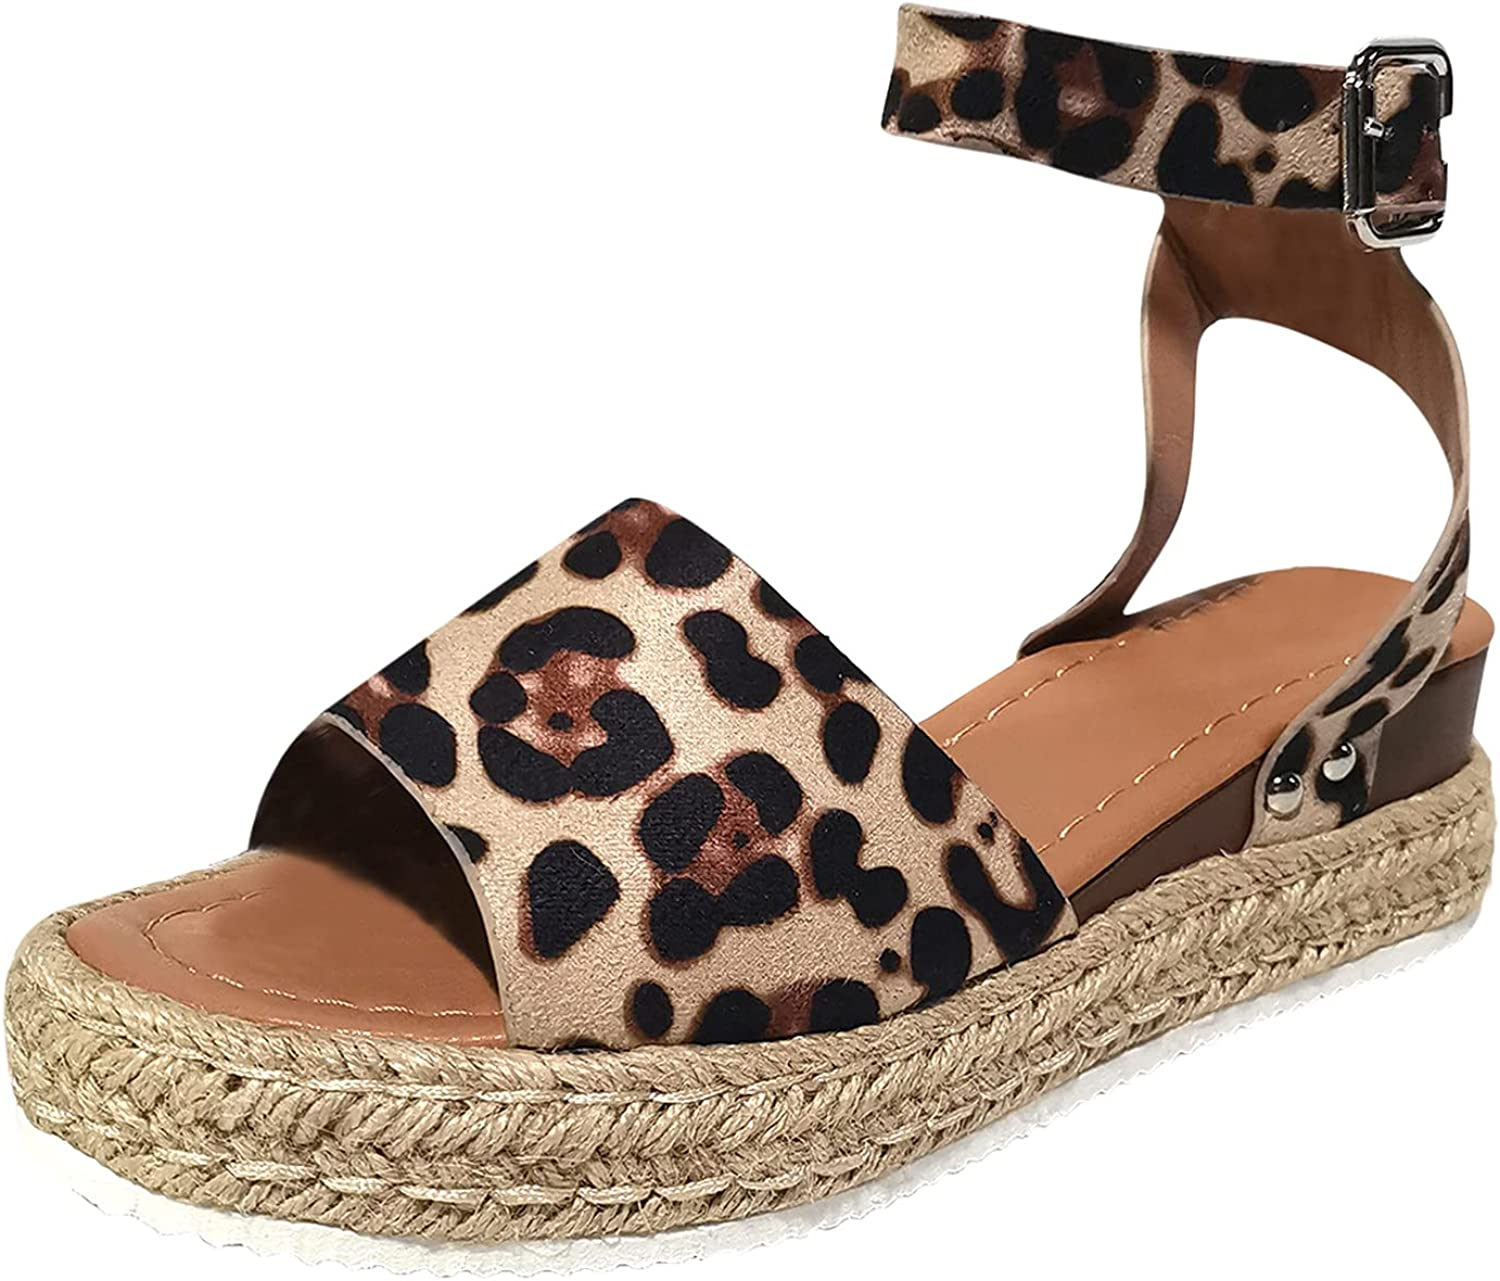 Ultra-Cheap Deals Goldweather Wedge Sandals for Women Shoes T Strap Ankle Open Toe Memphis Mall